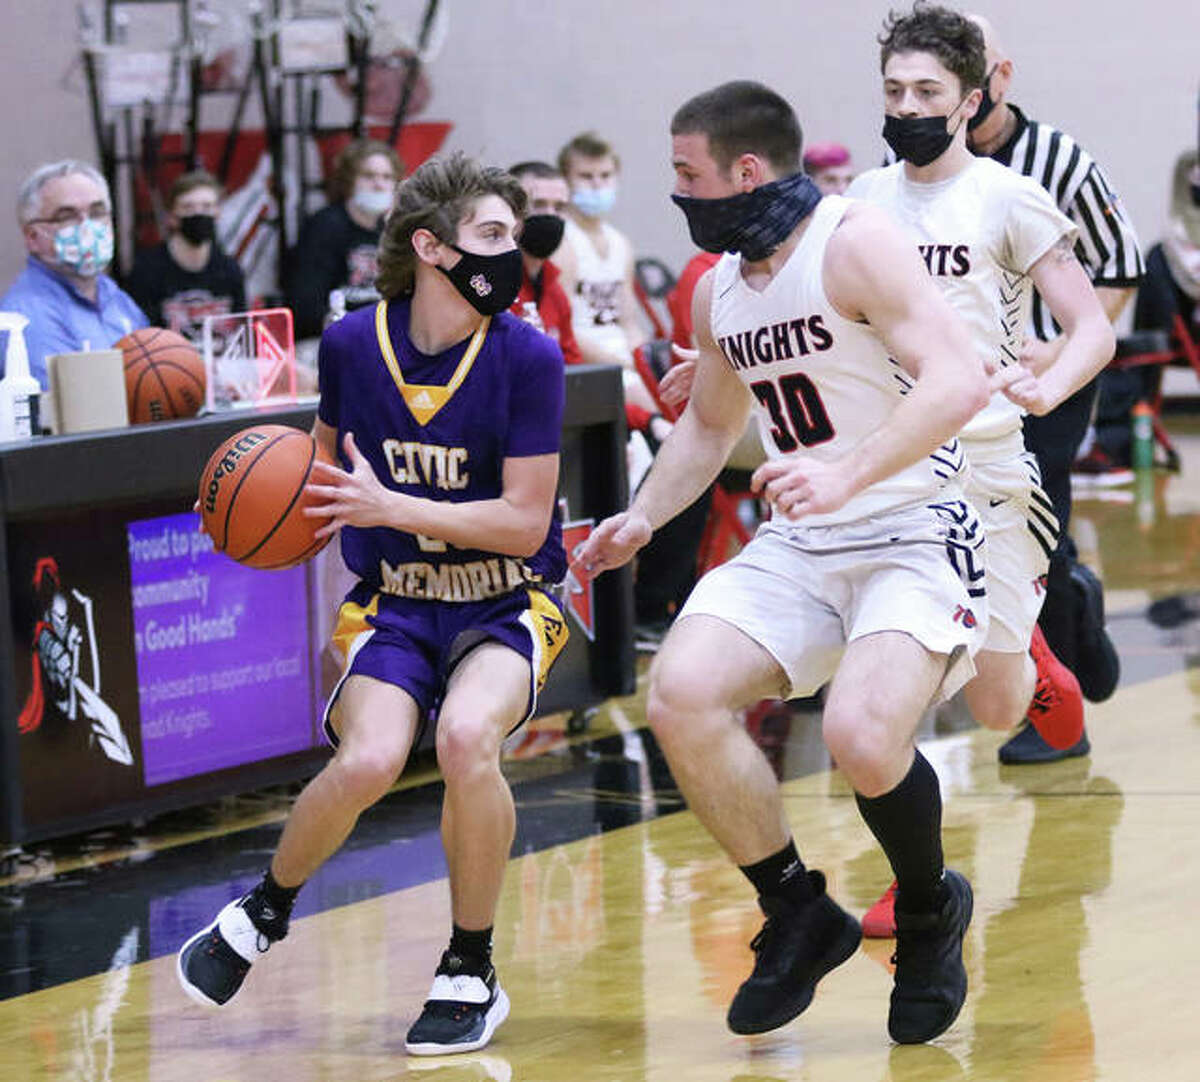 CM's D.J. Dutton (left) pulls up on the break, looking for a teammate while Triad's Sam Yager (30) defends in the second half of their Mississippi Valley Conference boys basketball game Tuesday night at Rich Mason Gym in Troy.